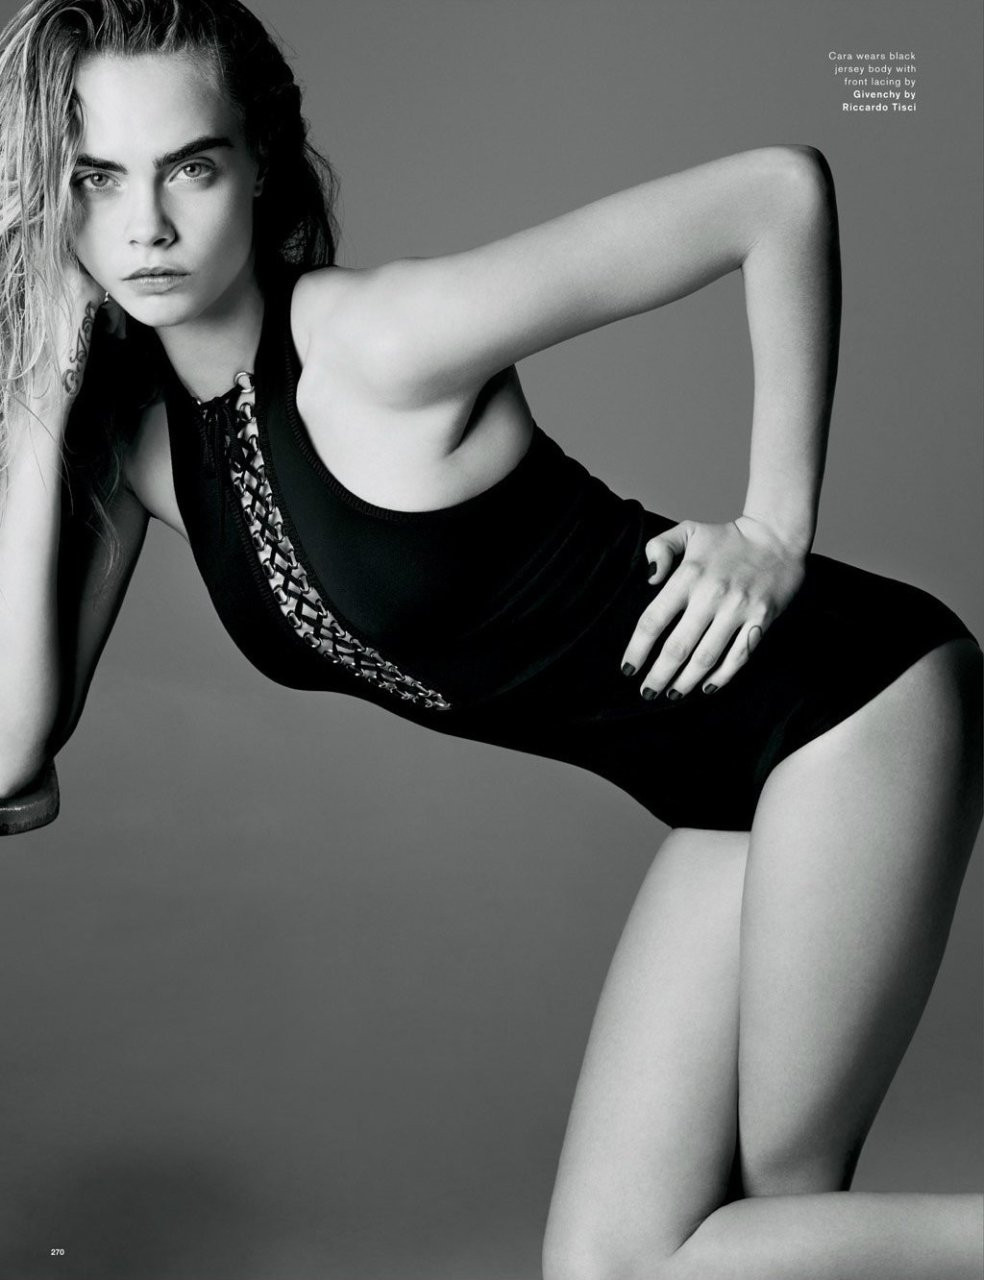 Cara-Delevingne-Kendall-Jenner-in-Love-Magazine-06---TheFappening.nu0c6b9e367d4c821b.jpg